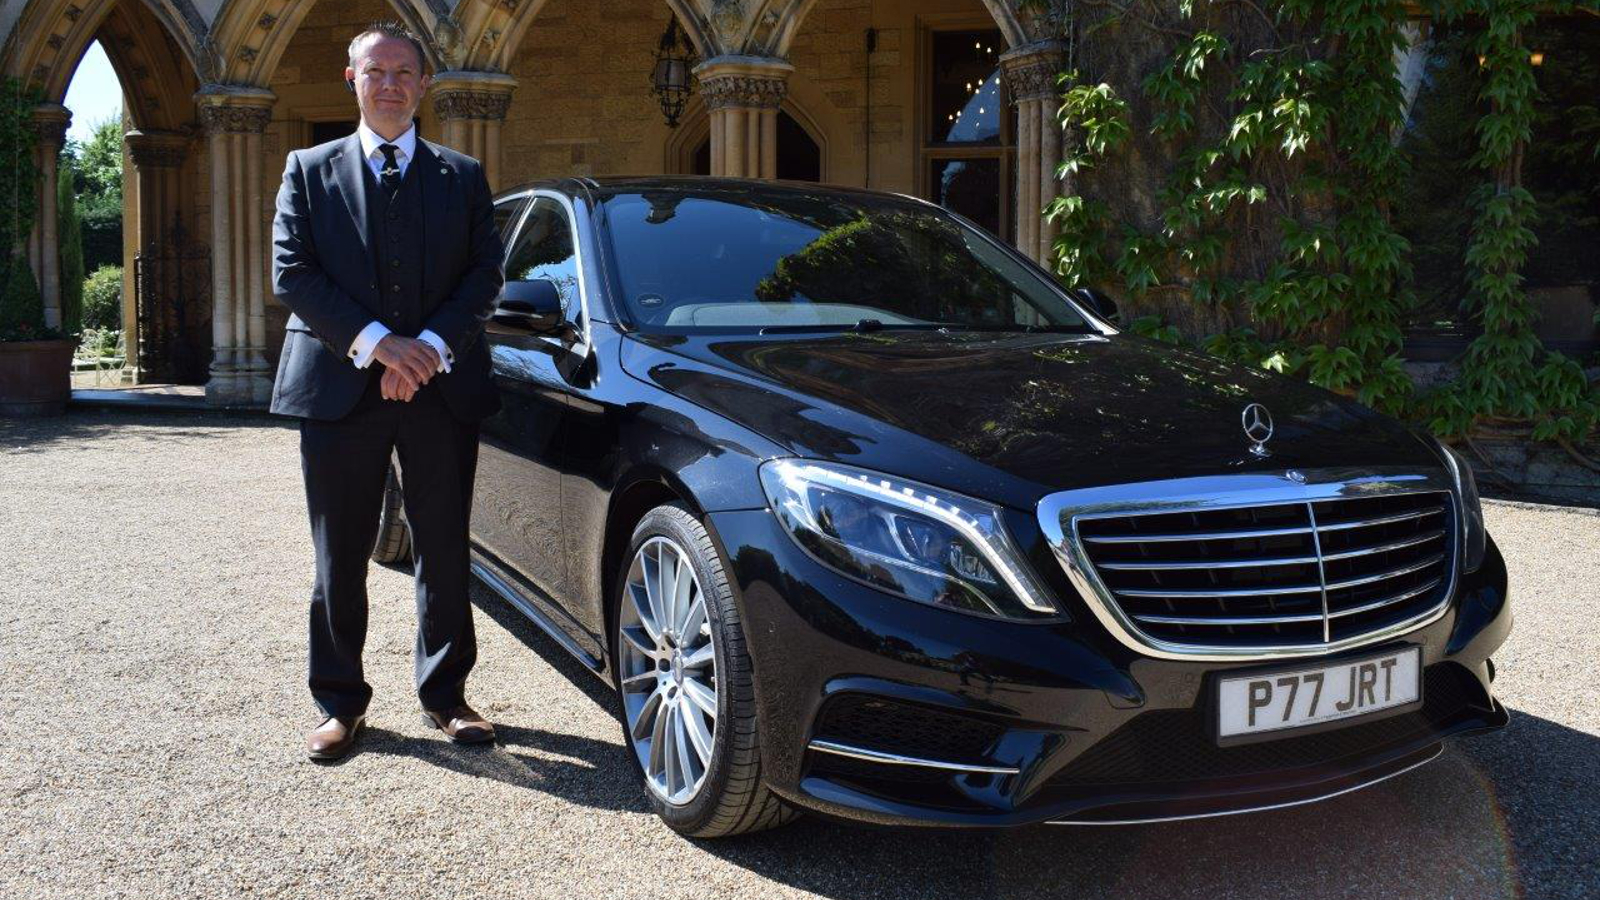 JONNY-ROCKS Luxury Chauffeurs